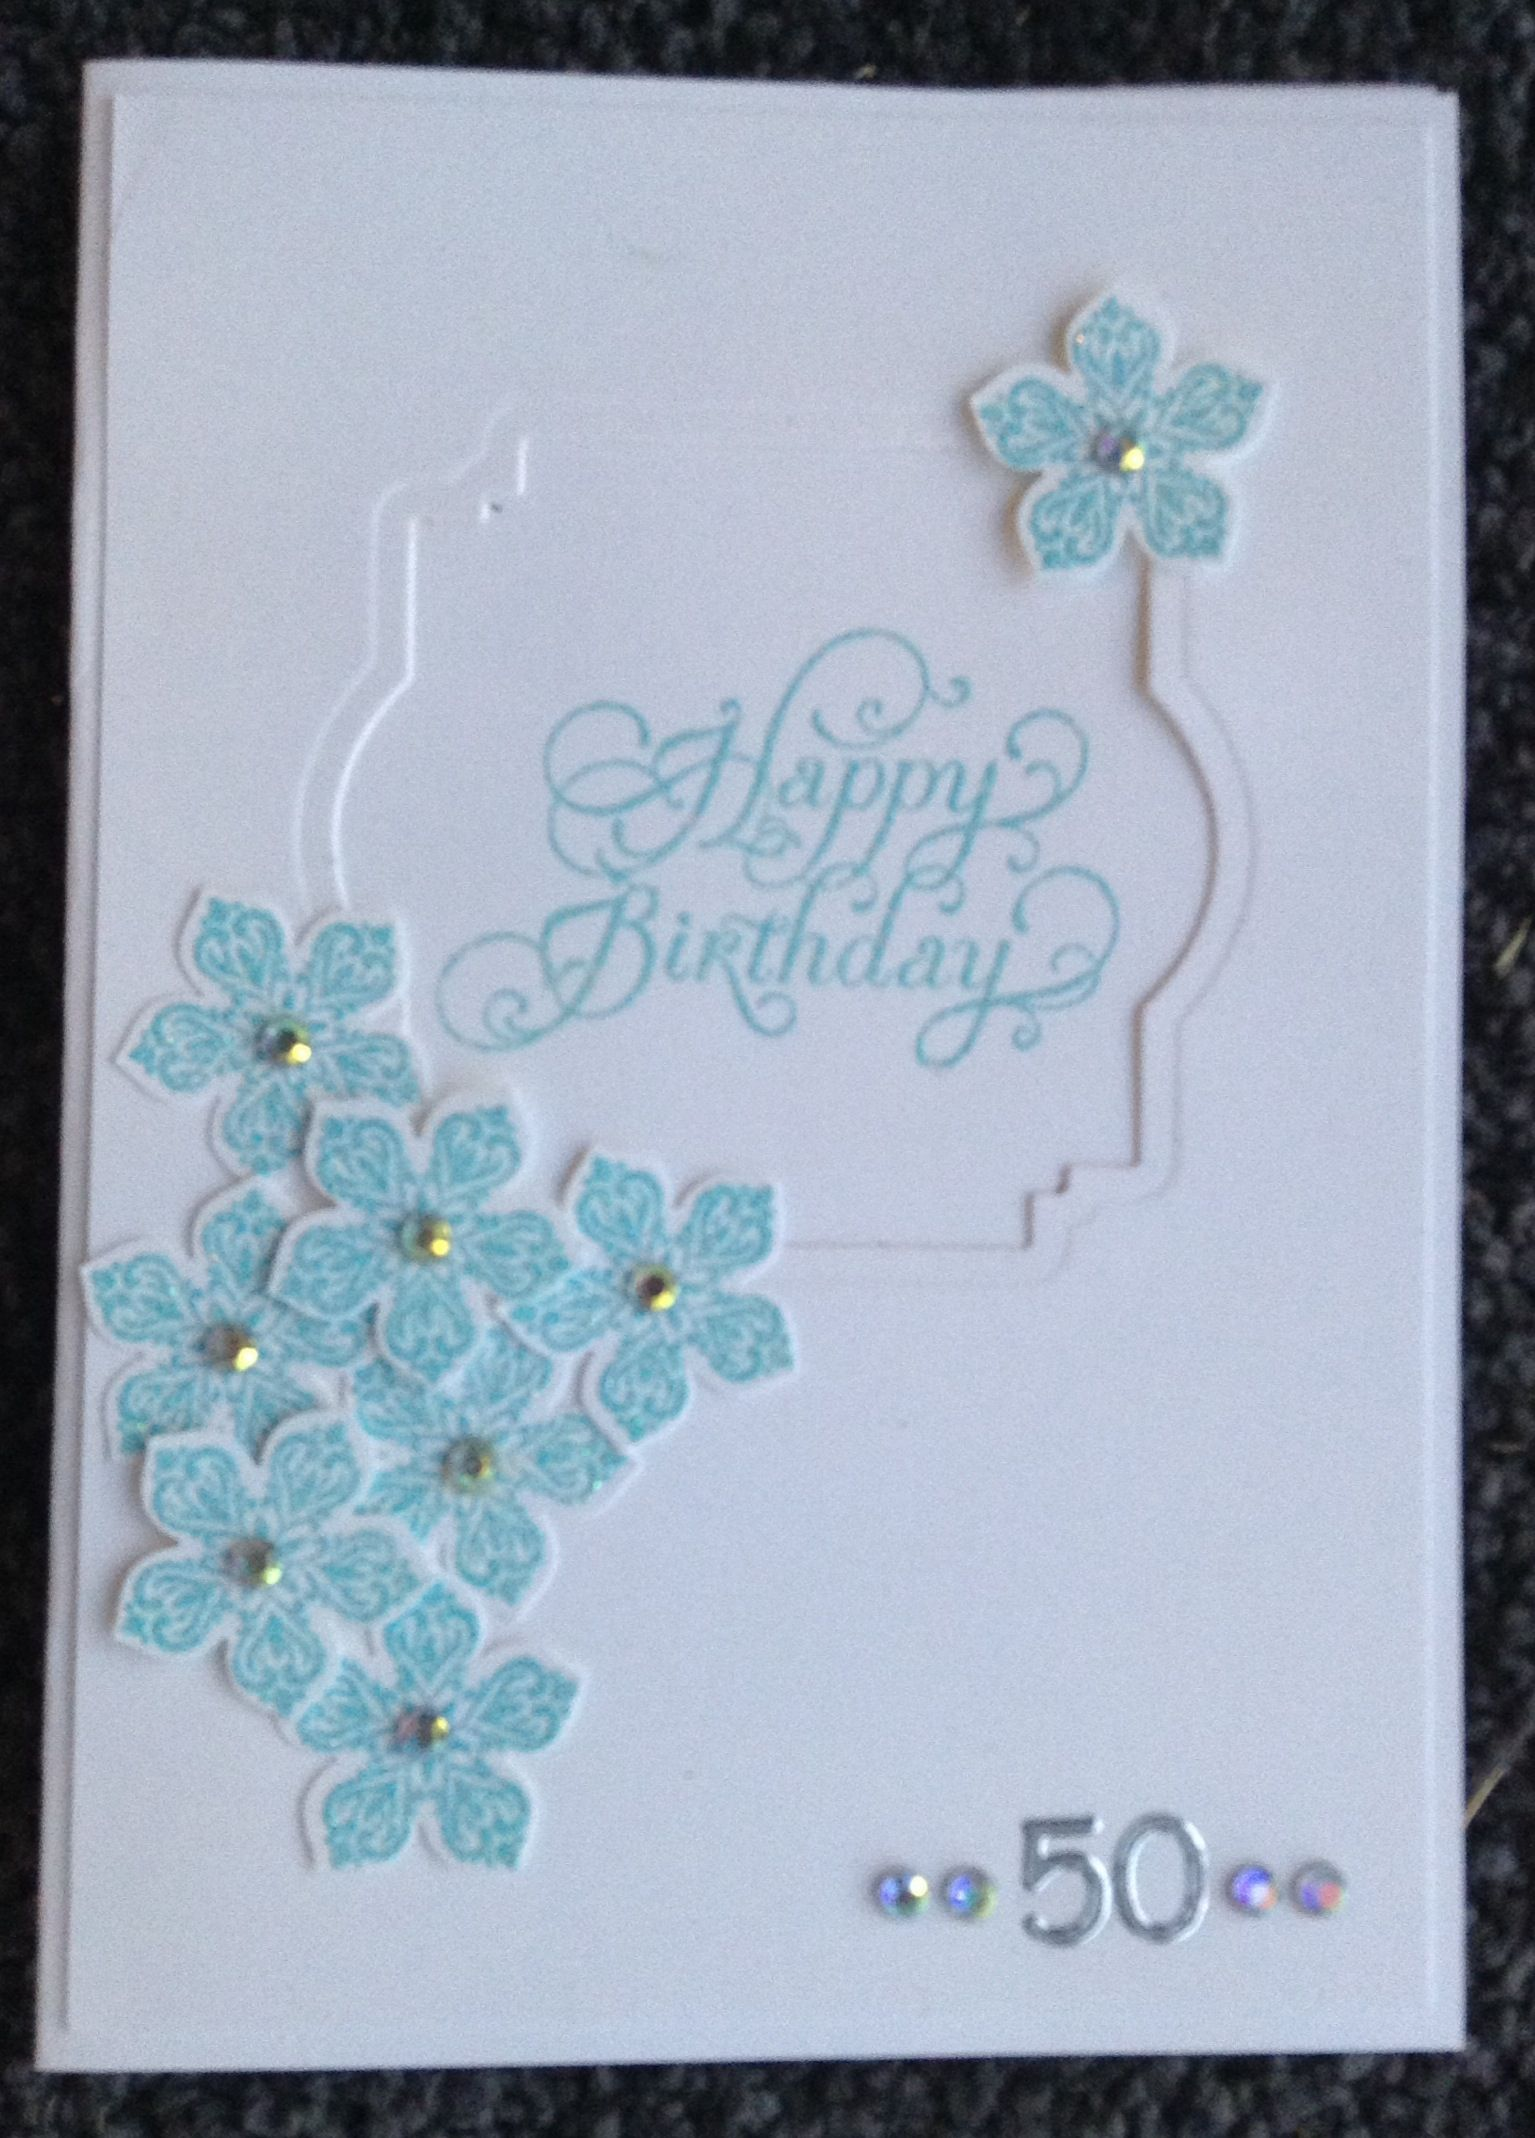 Petite petals rf th birthday female birthday cards